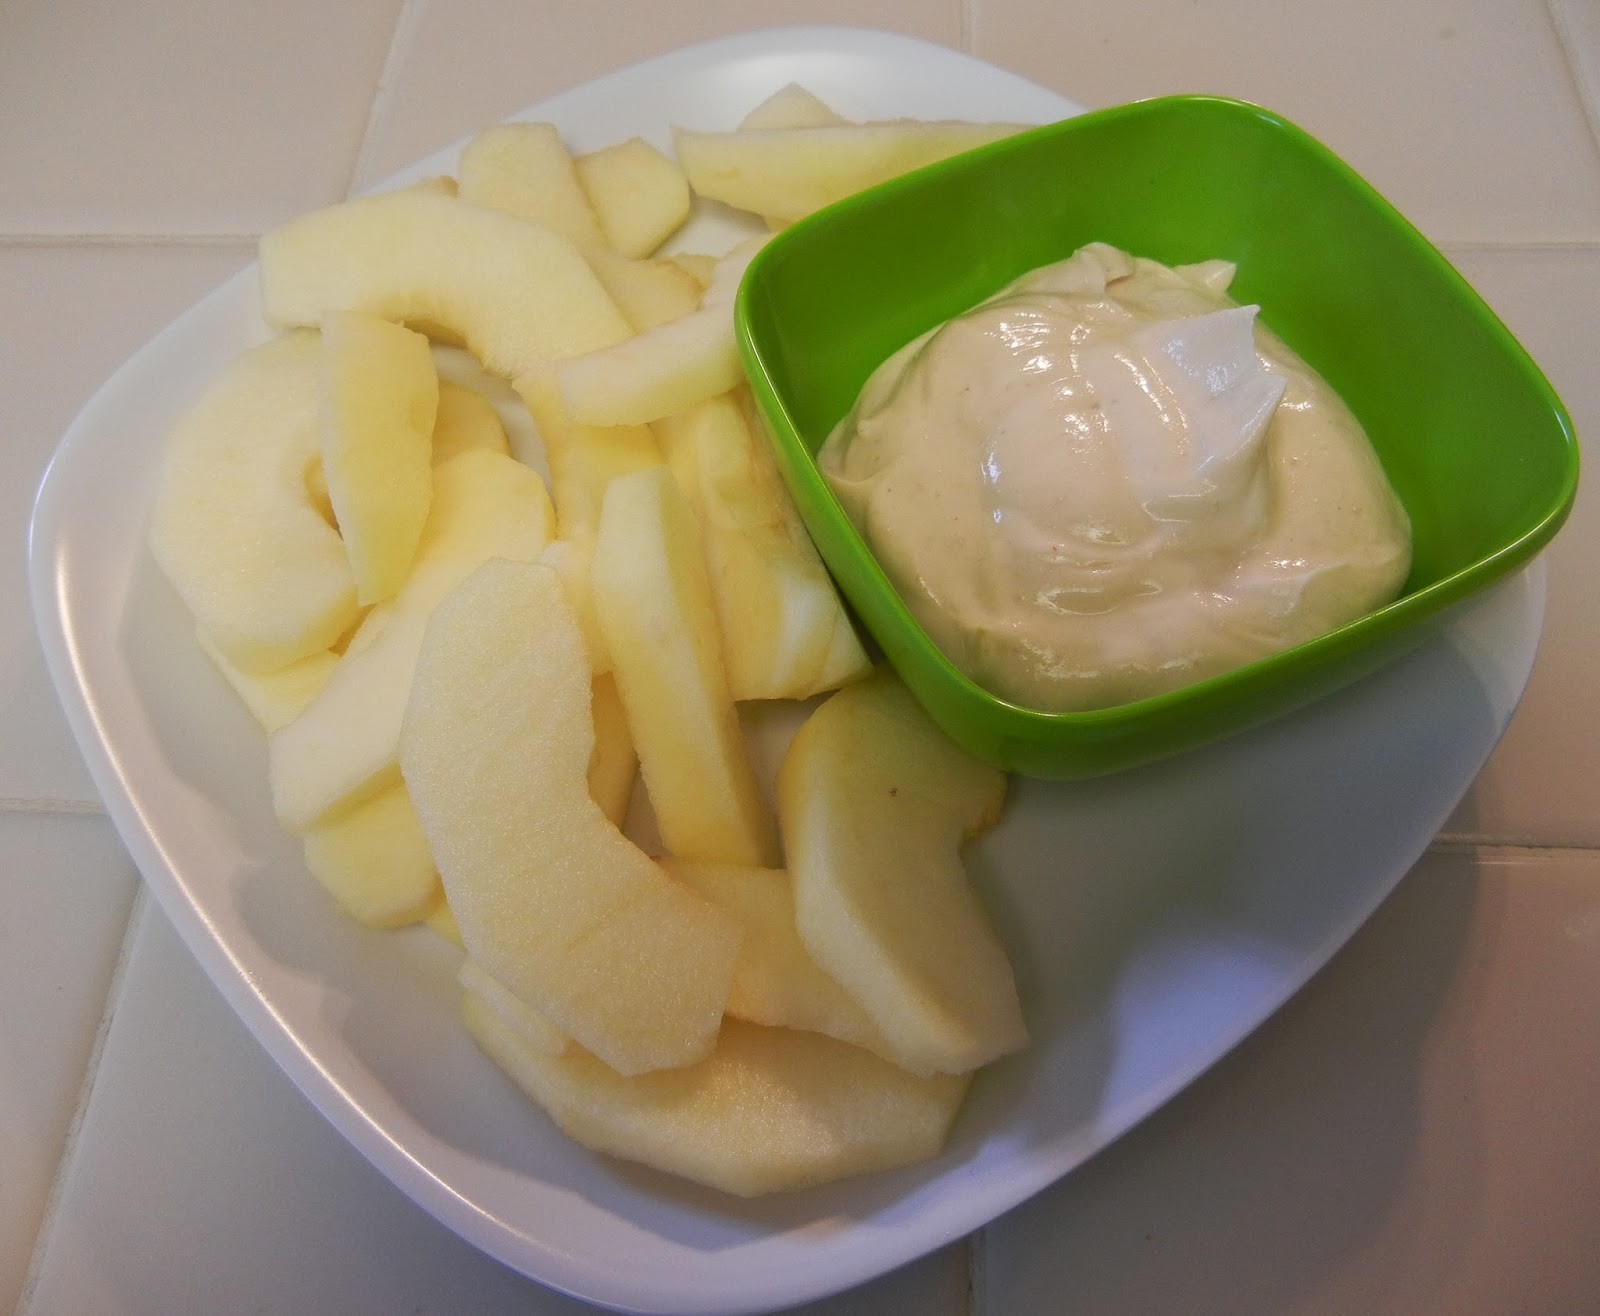 Sliced+Honeycrisp+Apple+Greek+Yogurt+Powdered+Peanut+Butter+Dip Weight Loss Recipes A day in my pouch